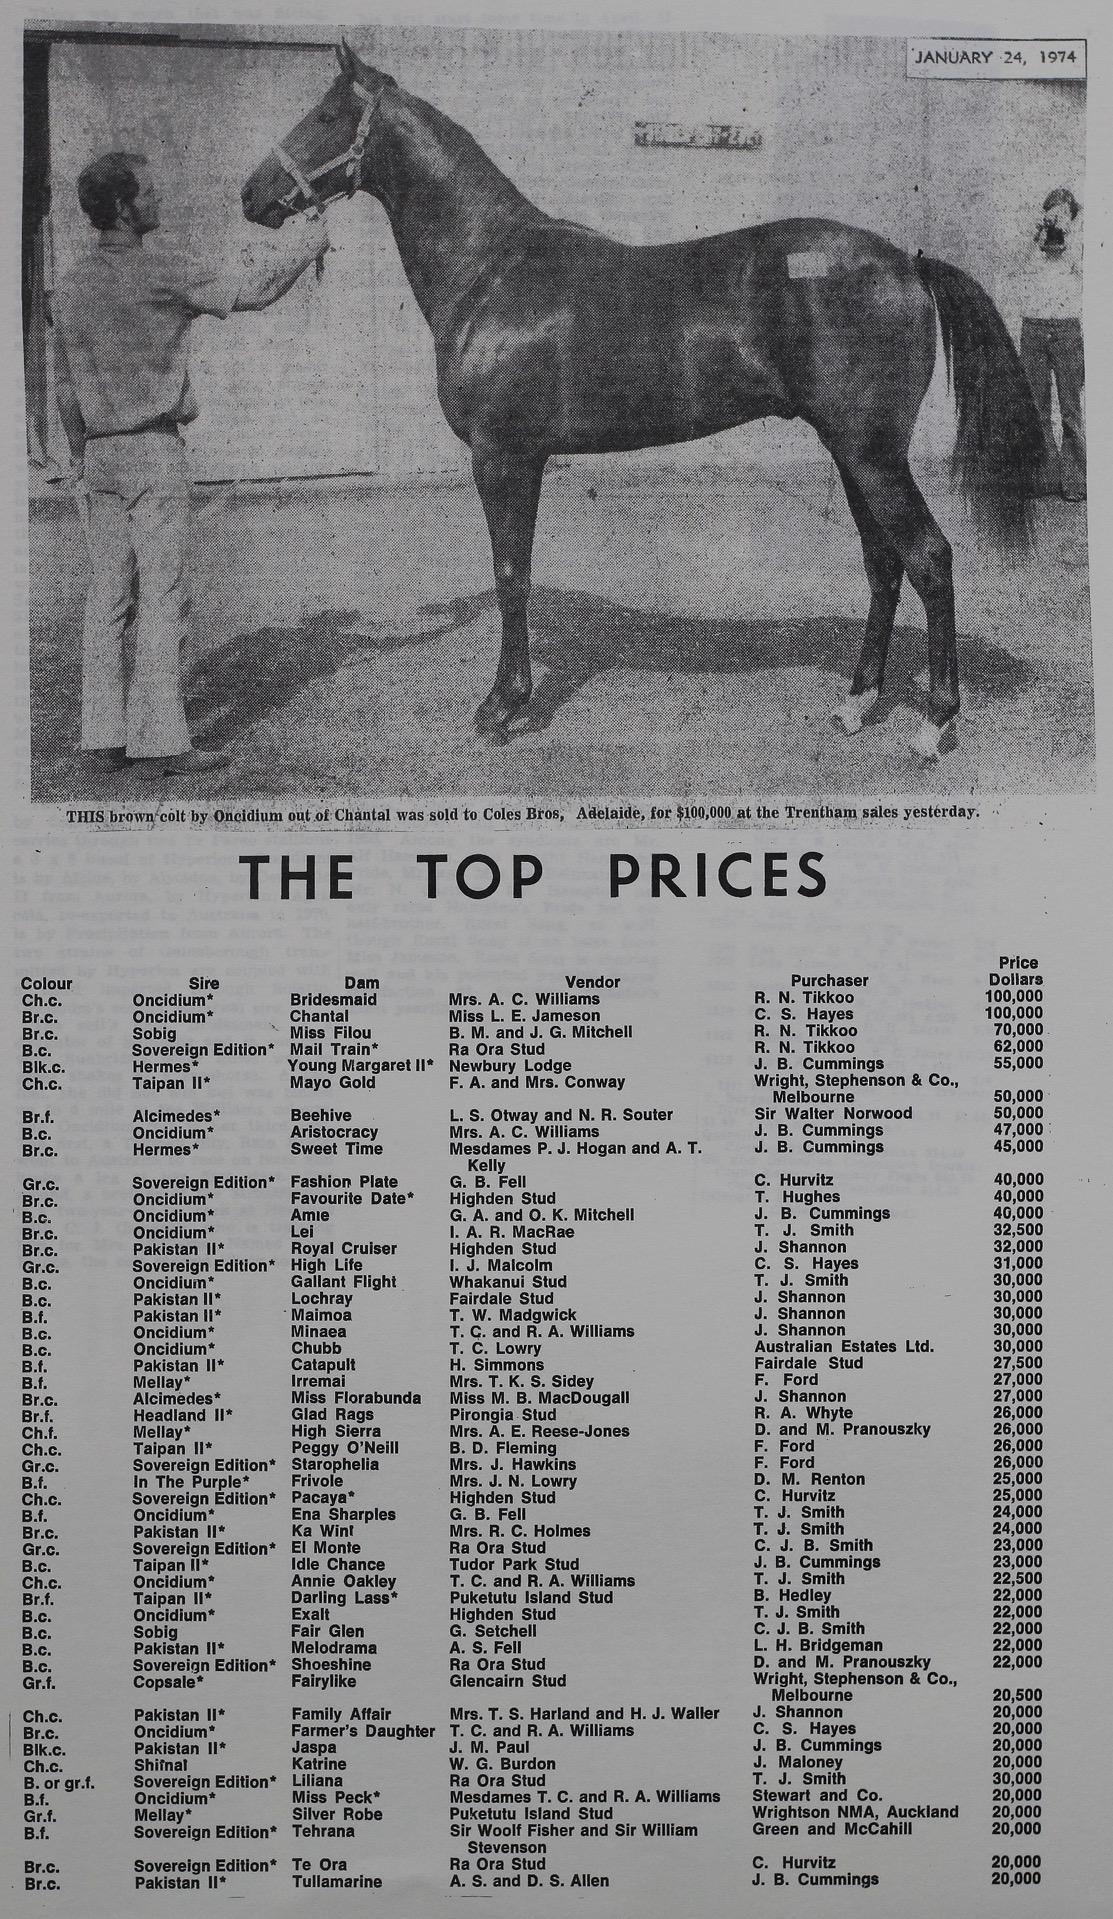 The Top Prices